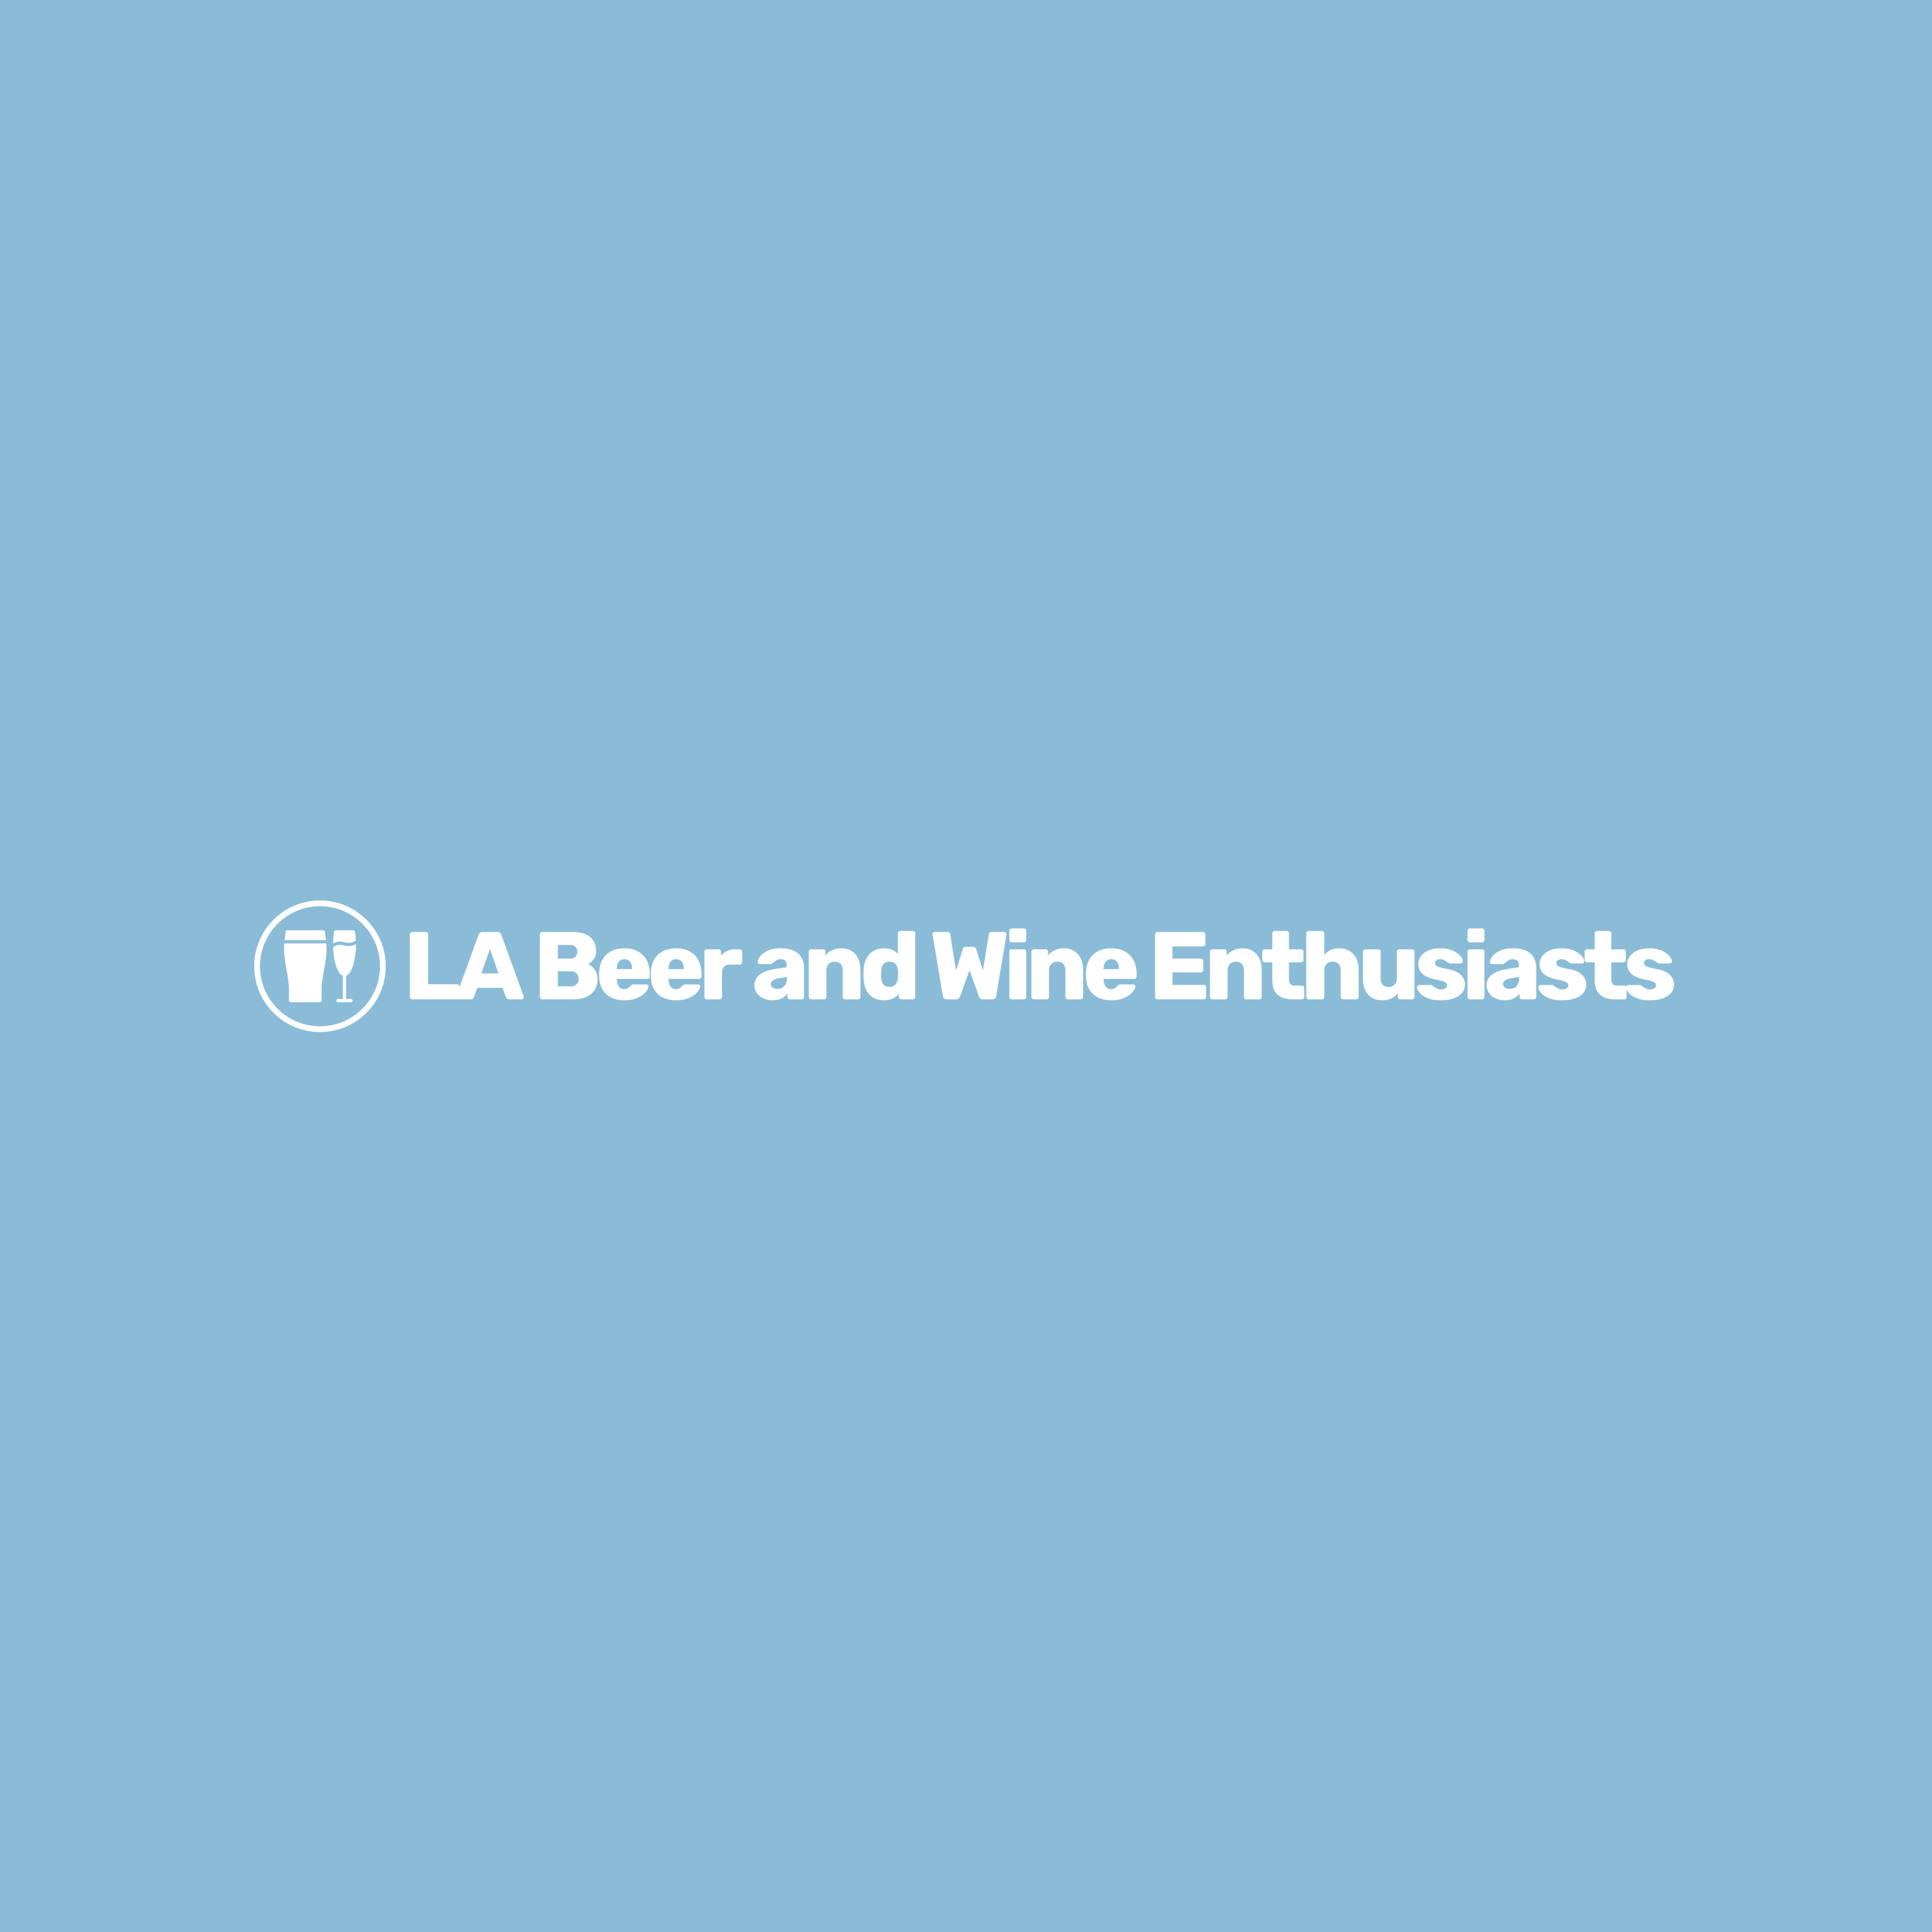 LA Beer and Wine Enthusiasts